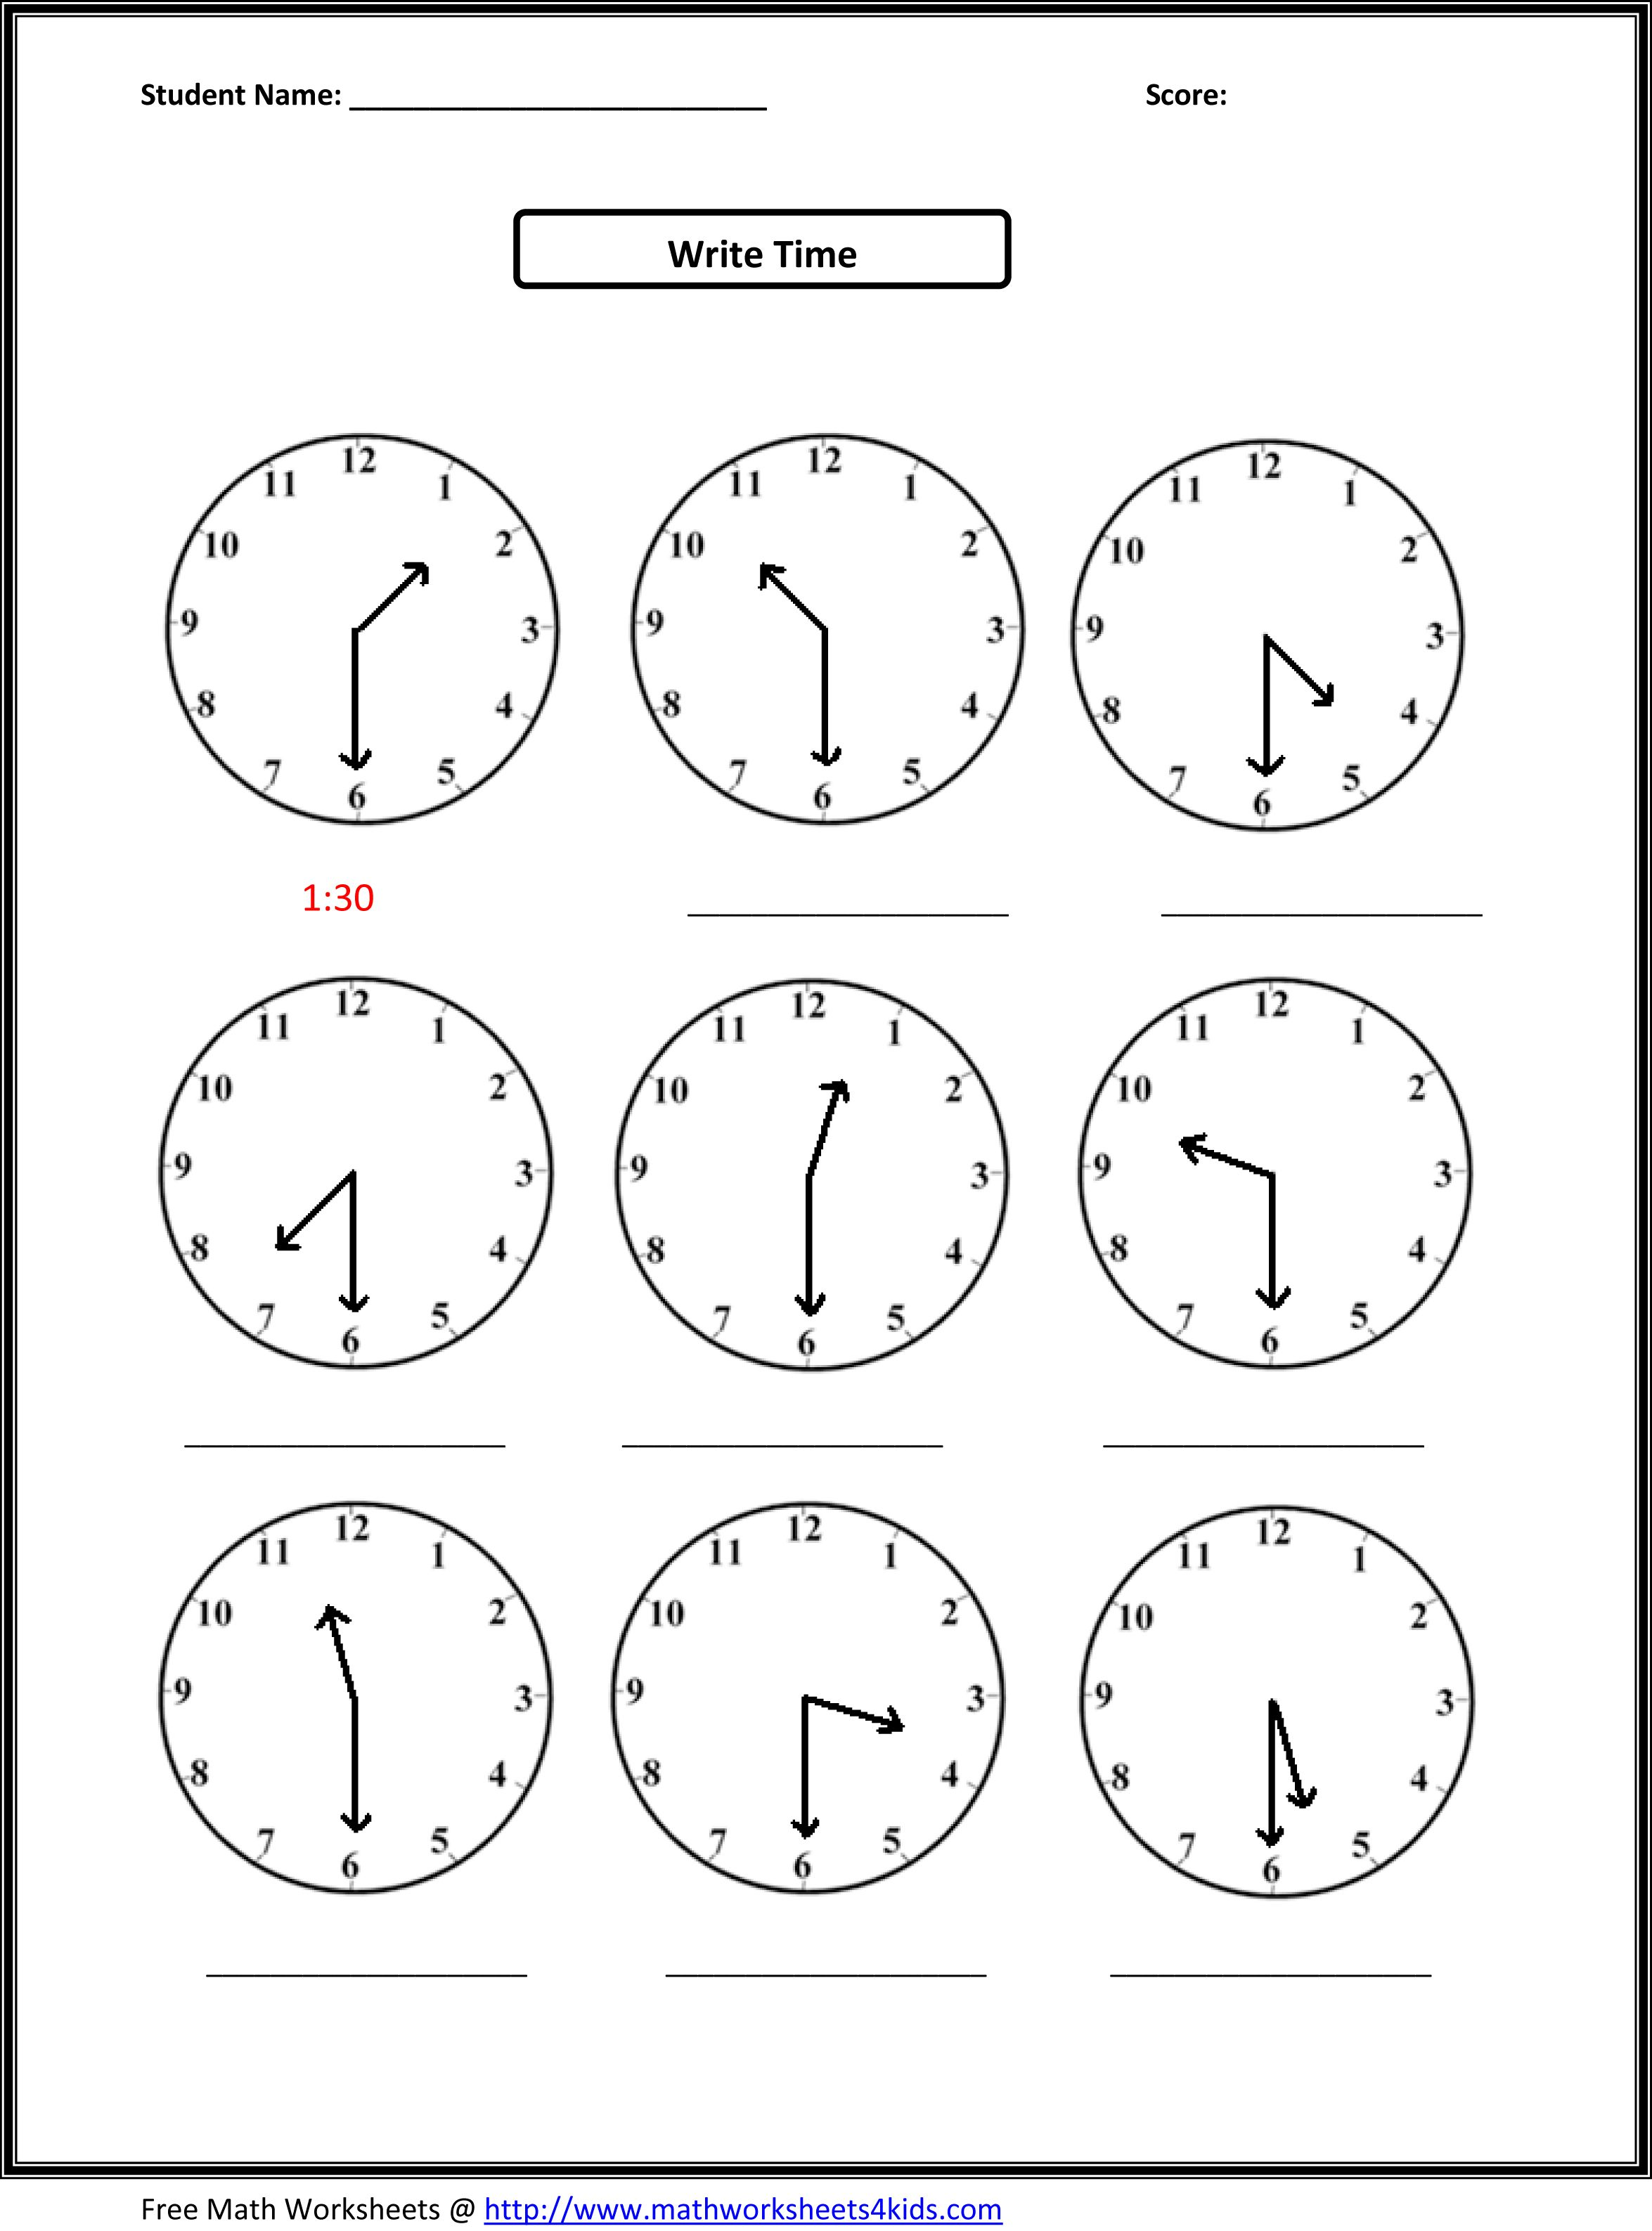 Weirdmailus  Remarkable Worksheet On Time For Grade   Reocurent With Fascinating Free Printable Telling Time Worksheets Nd Grade  Reocurent With Awesome Coordinate Worksheet Also Fun Third Grade Math Worksheets In Addition Anagram Worksheets And Letter M Printable Worksheets As Well As Context Clues Worksheets Second Grade Additionally Abc For Preschoolers Worksheets From Reocurentcom With Weirdmailus  Fascinating Worksheet On Time For Grade   Reocurent With Awesome Free Printable Telling Time Worksheets Nd Grade  Reocurent And Remarkable Coordinate Worksheet Also Fun Third Grade Math Worksheets In Addition Anagram Worksheets From Reocurentcom